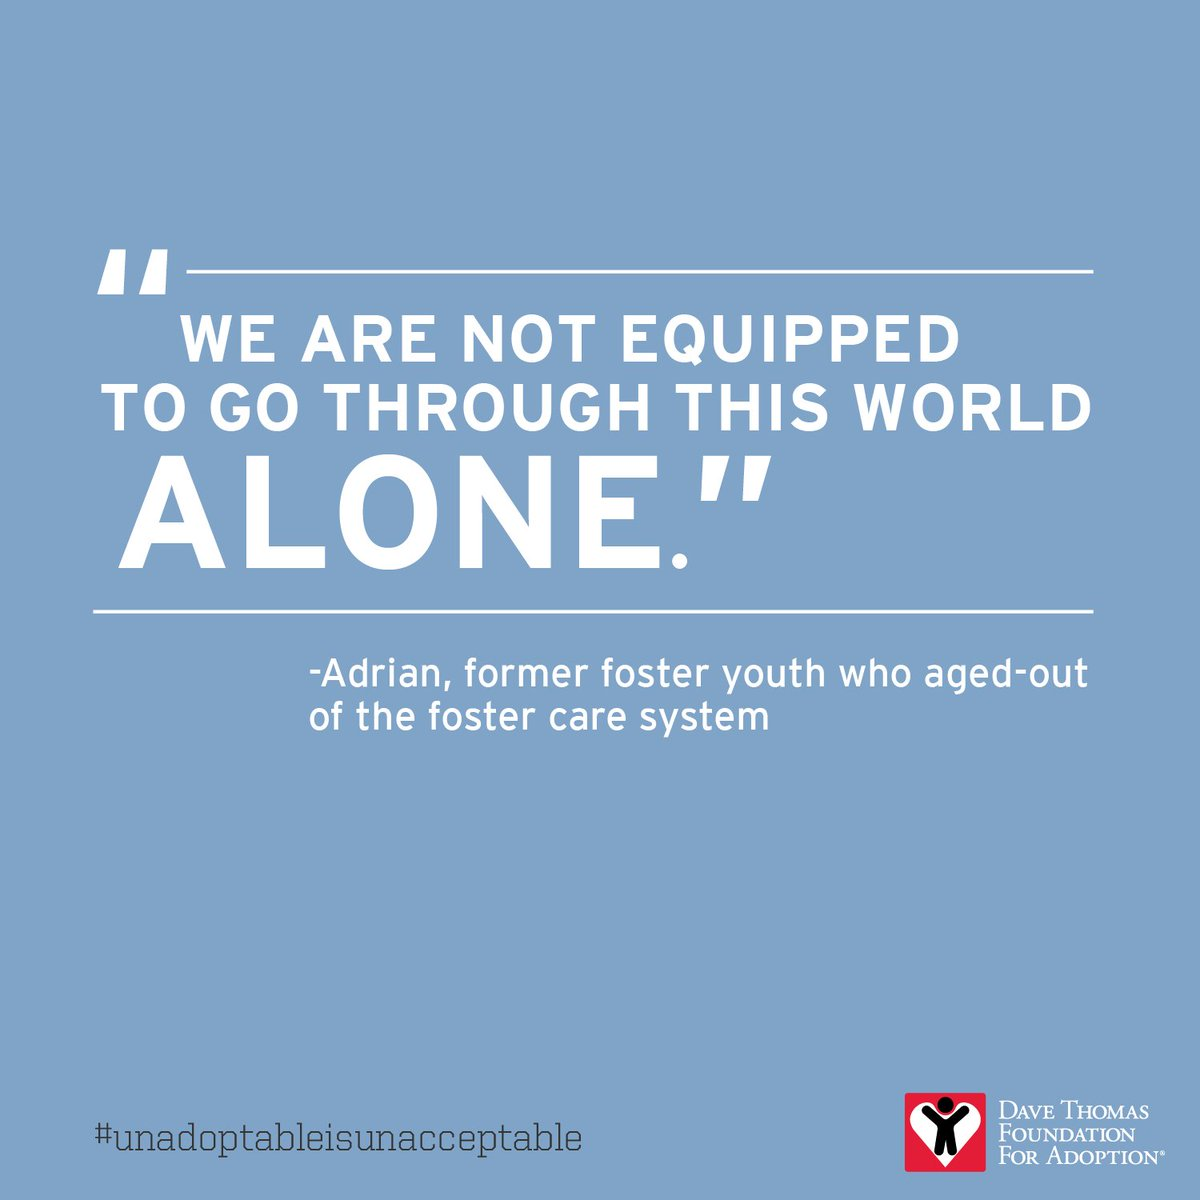 More than 23,000 children age out of US #fostercare every year. RT to raise awareness #unadoptableisunacceptable https://t.co/F3AJyQ4wZ7